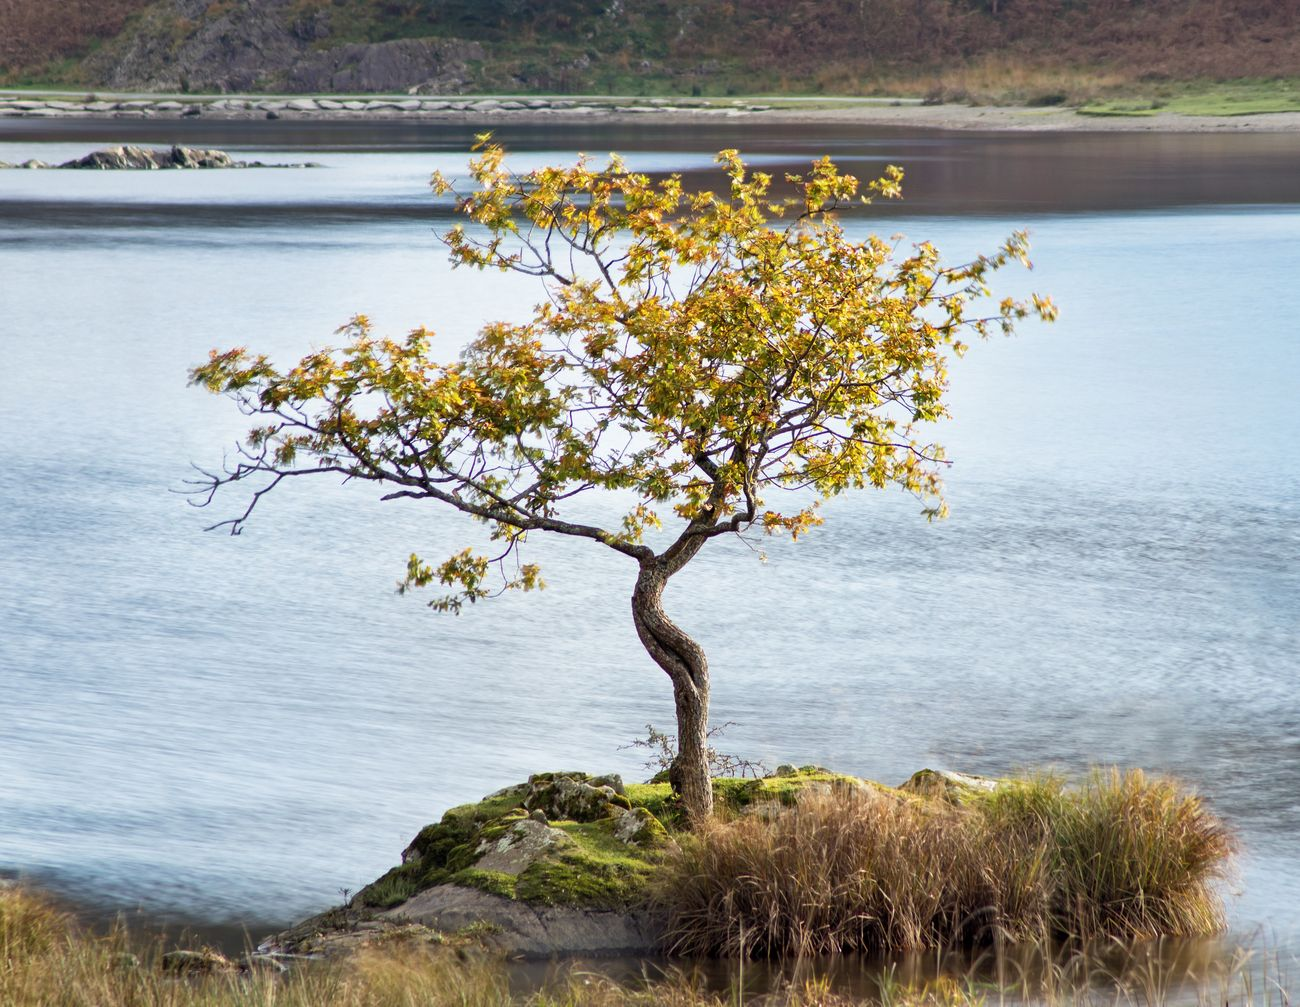 A single tree on a small peninsula off the shore of Rydal Water